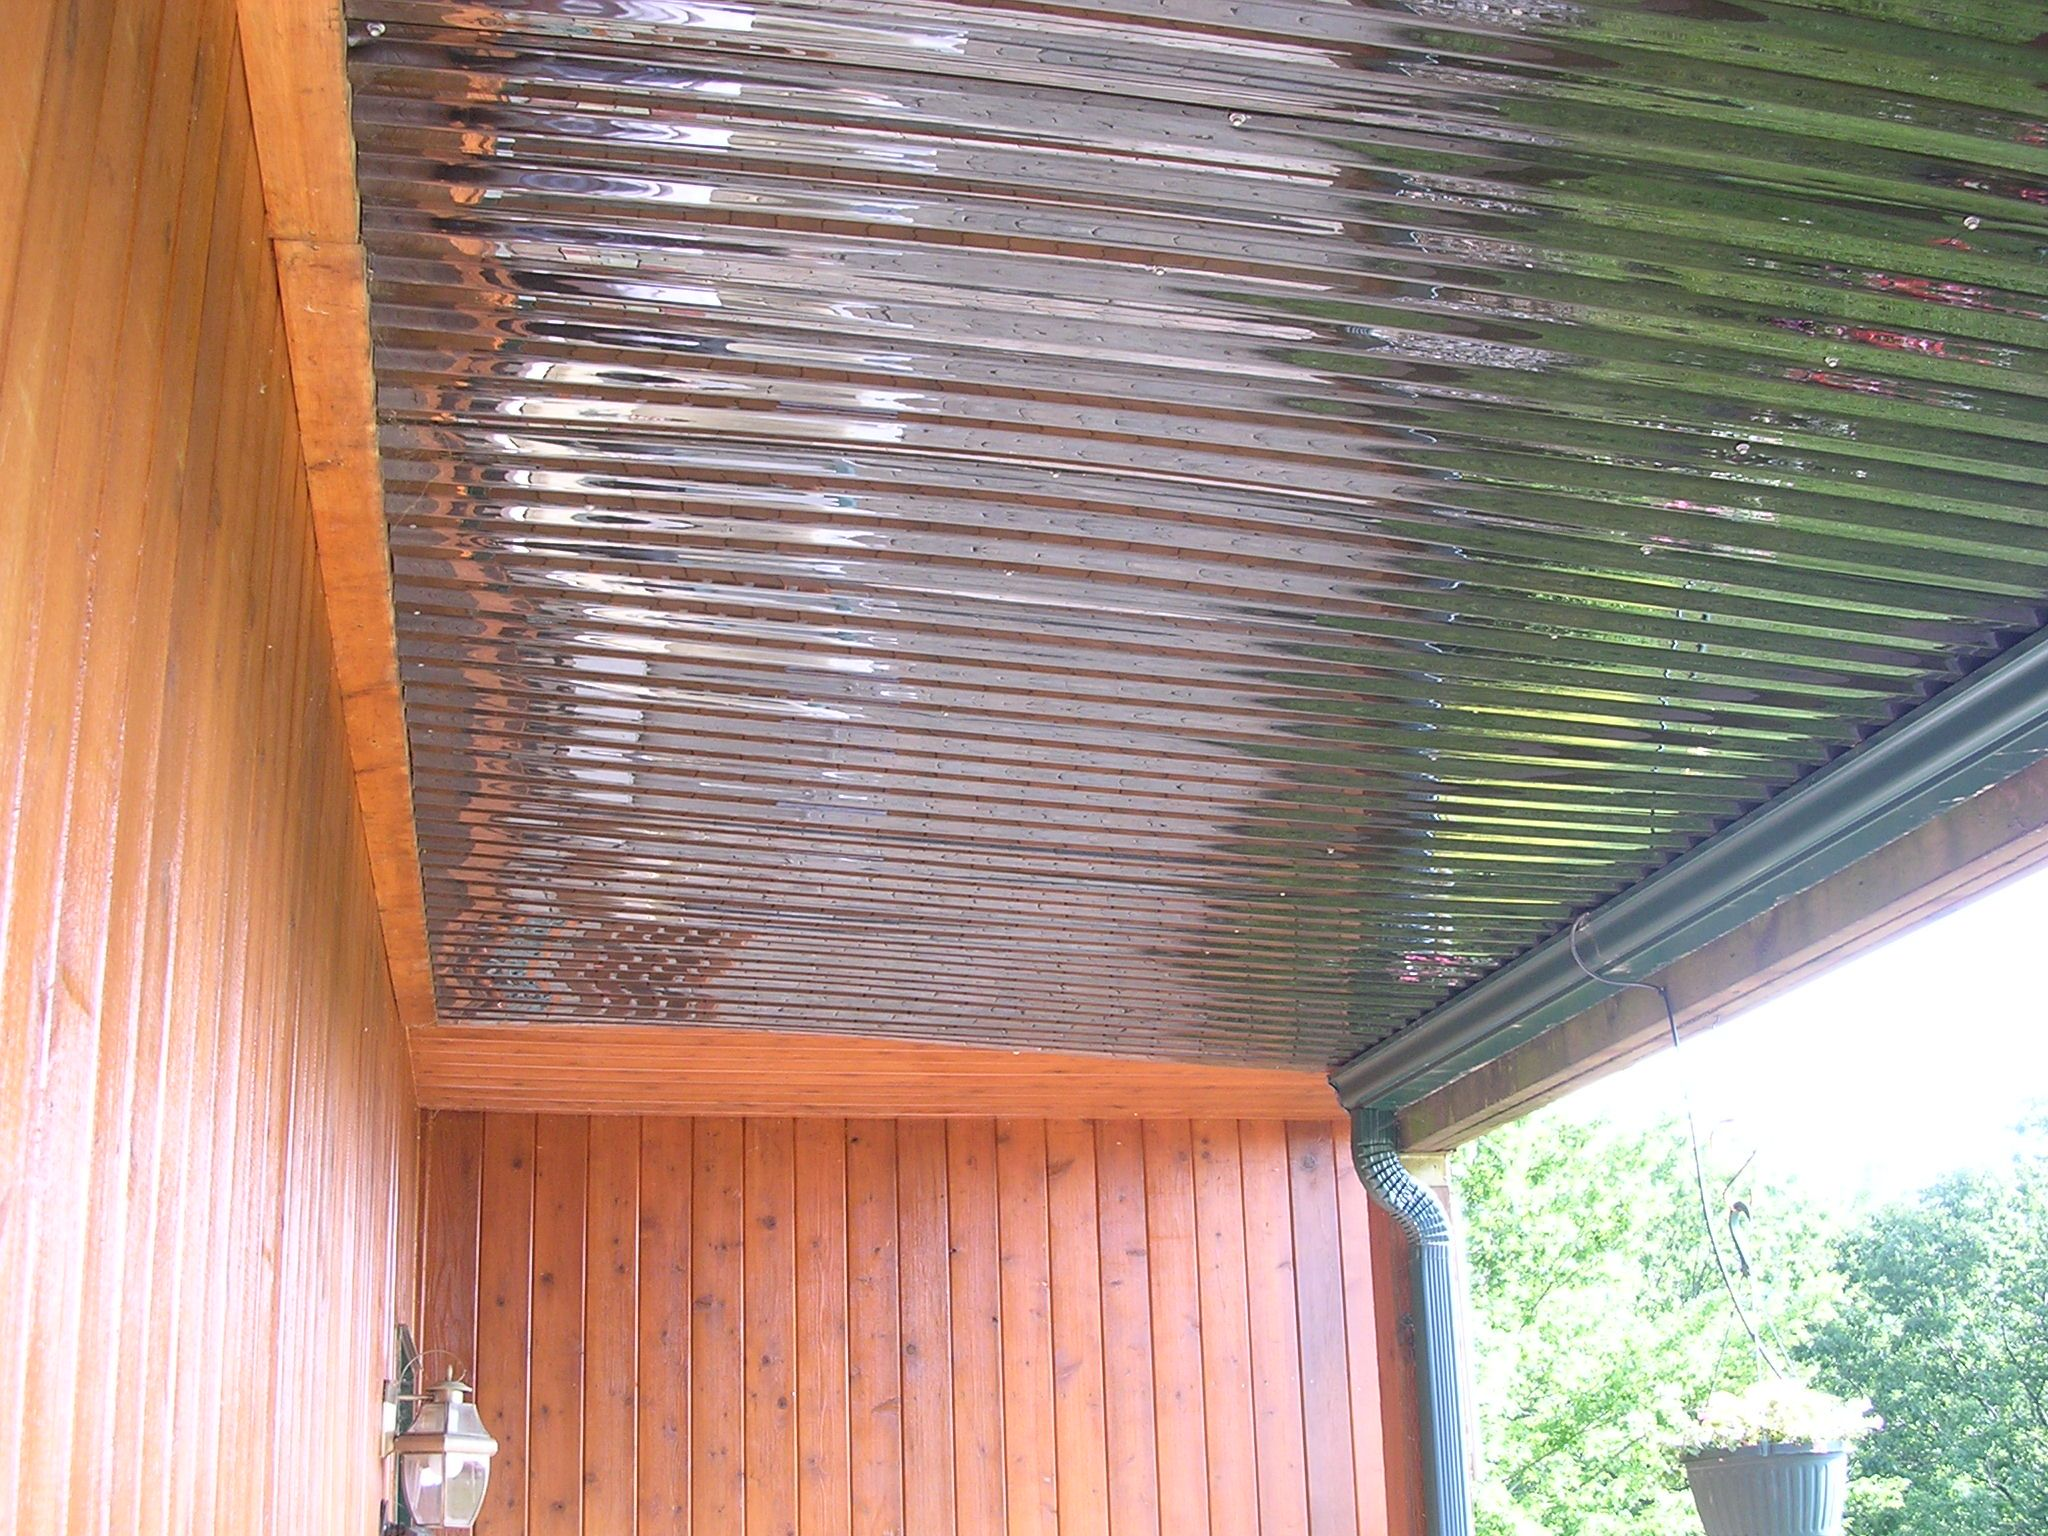 How To Keep Stuff Dry Under New Deck Need Ideas Page 2 Corrugated Metal Roof Home Porch Corrugated Roofing